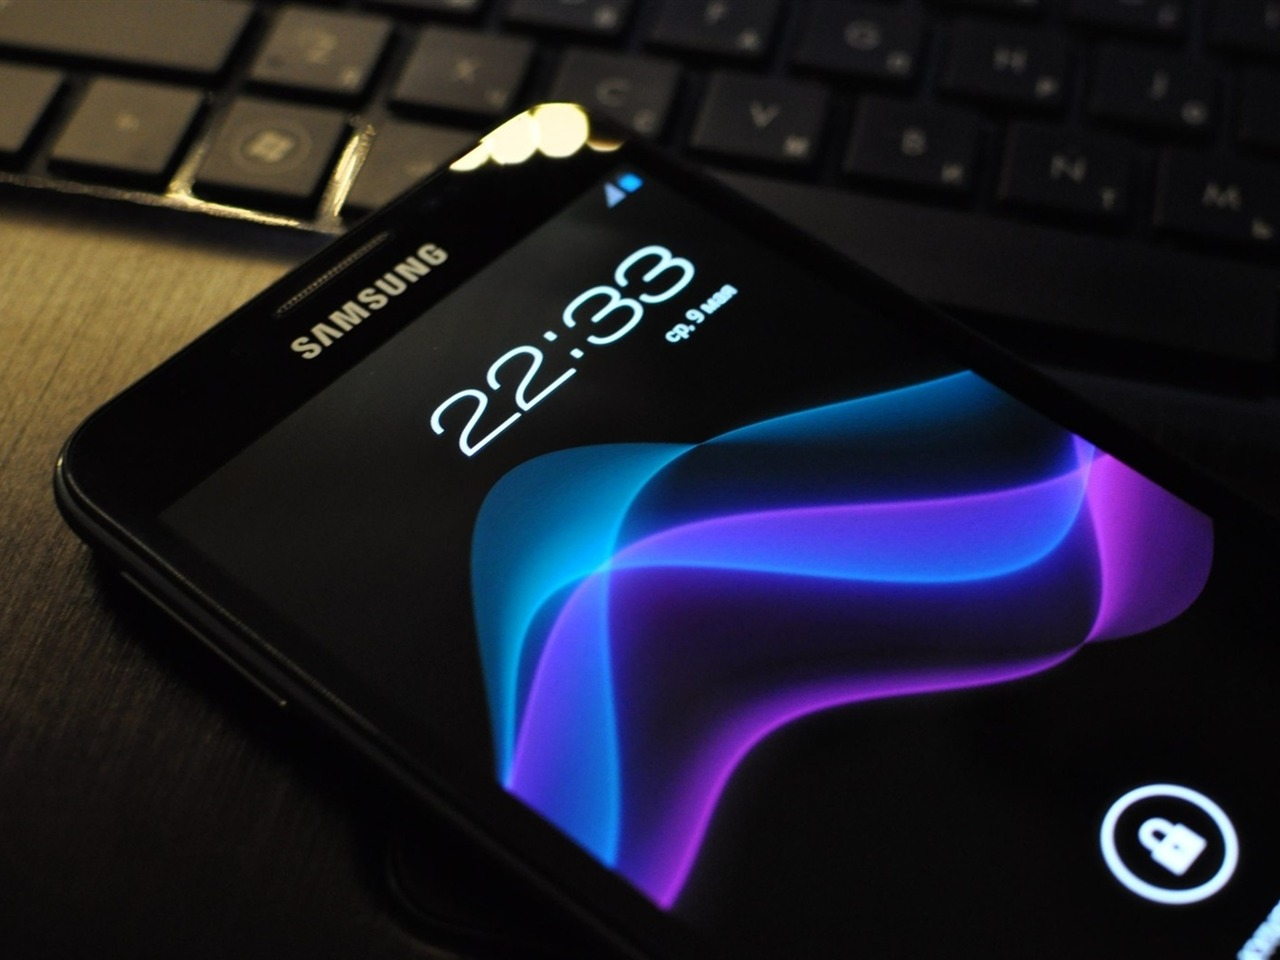 Galaxy Phone Android Note Samsung-Digital Brand